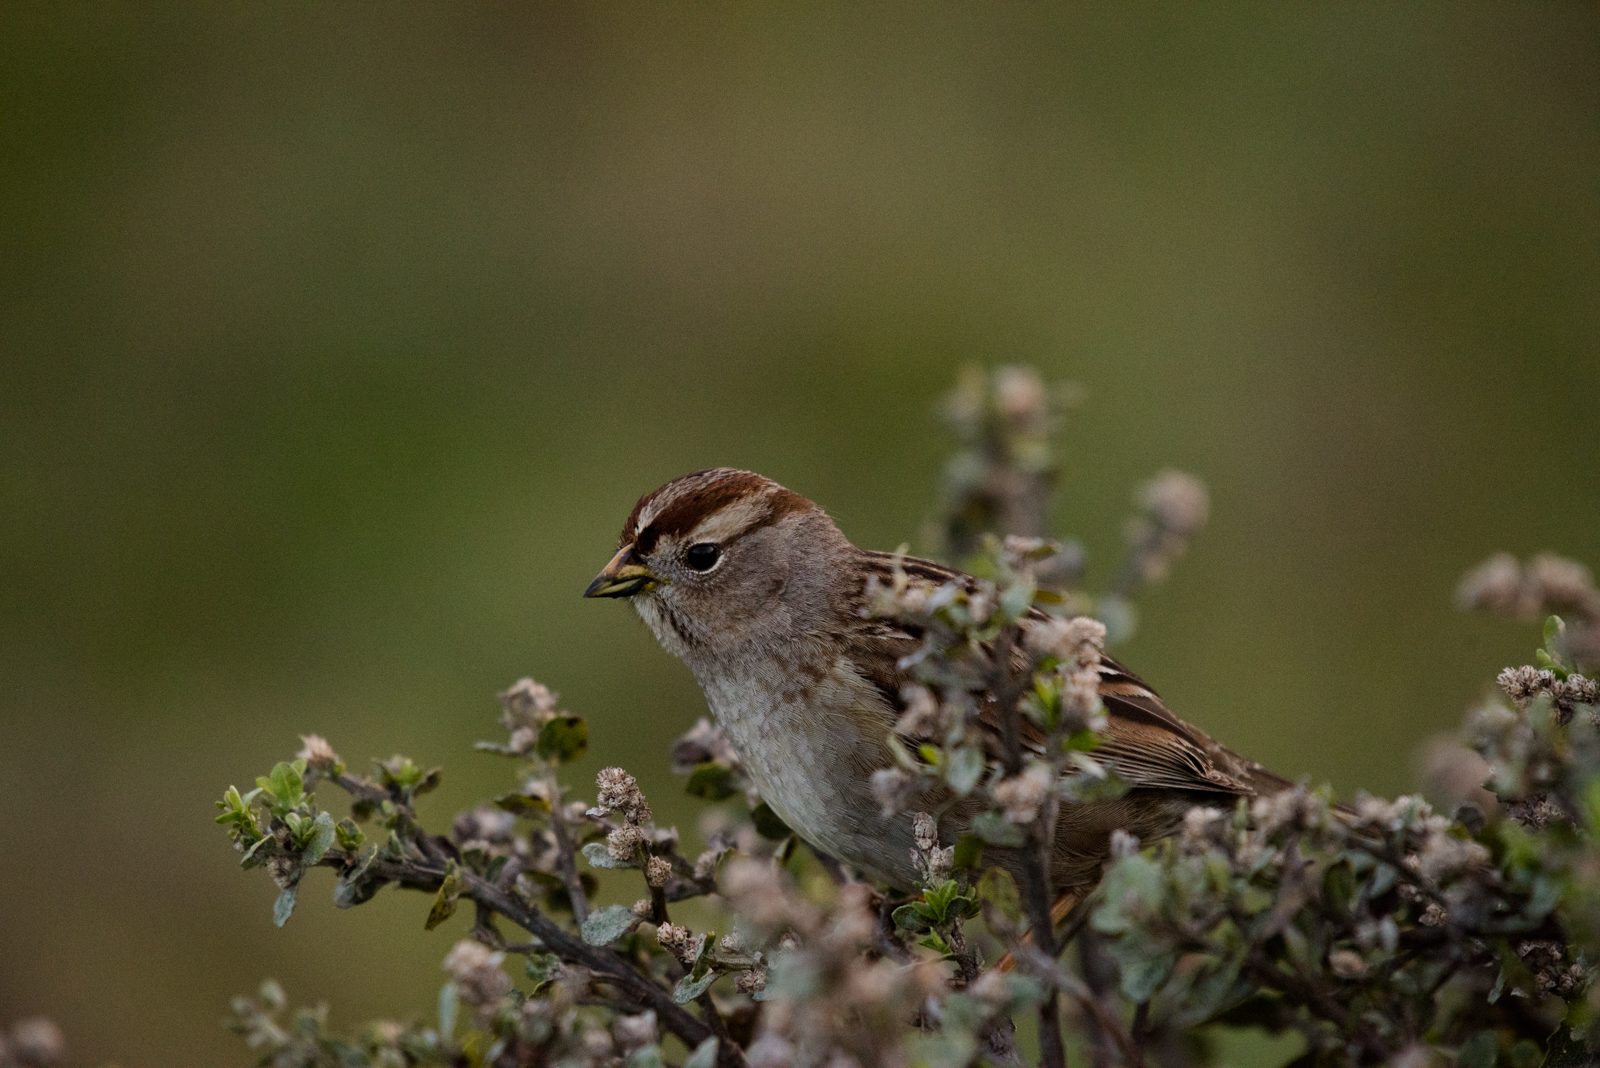 Juvenile White-crowned Sparrow perched on Coyote Brush